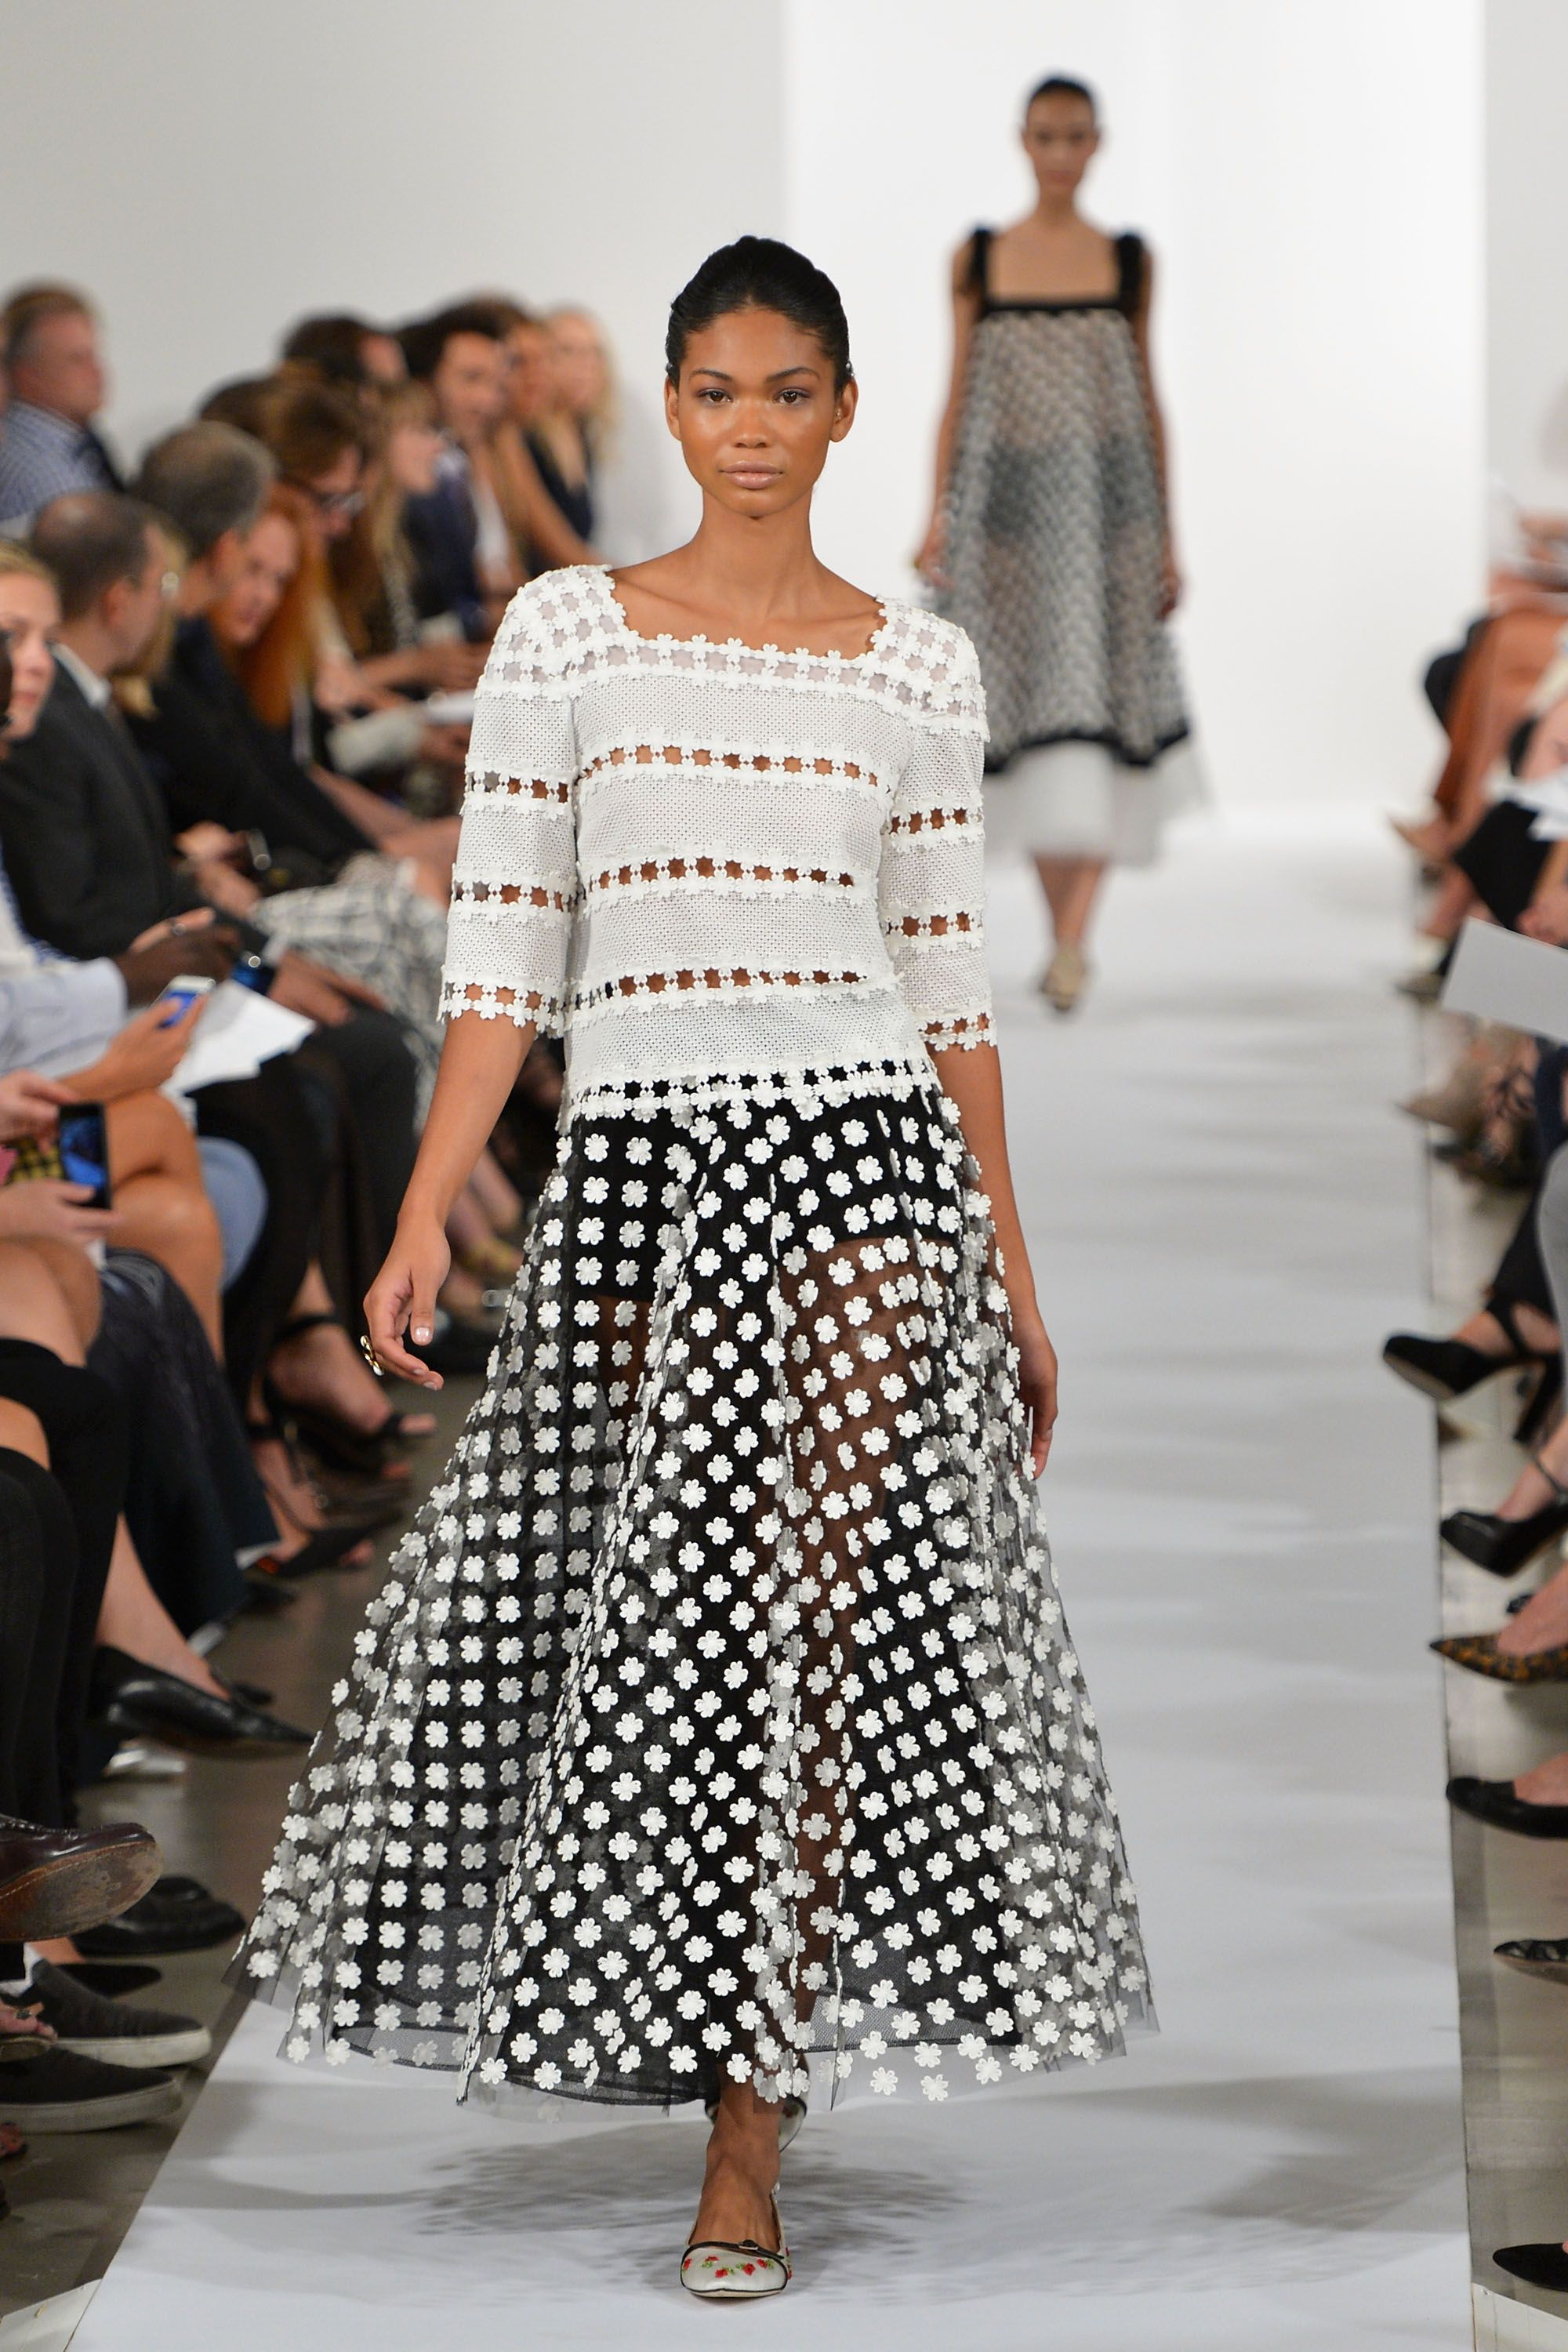 Chanel Iman Iman started modeling at the age of 12 and has had a lucrative career walking the runways of Burberry, Tom Ford, Gucci, Balenciaga, Max Mara, and more. She's appeared in campaigns for the likes of Ralph Lauren and has walked in the Victoria's Secret Fashion show prior to becoming an Angel in 2010.